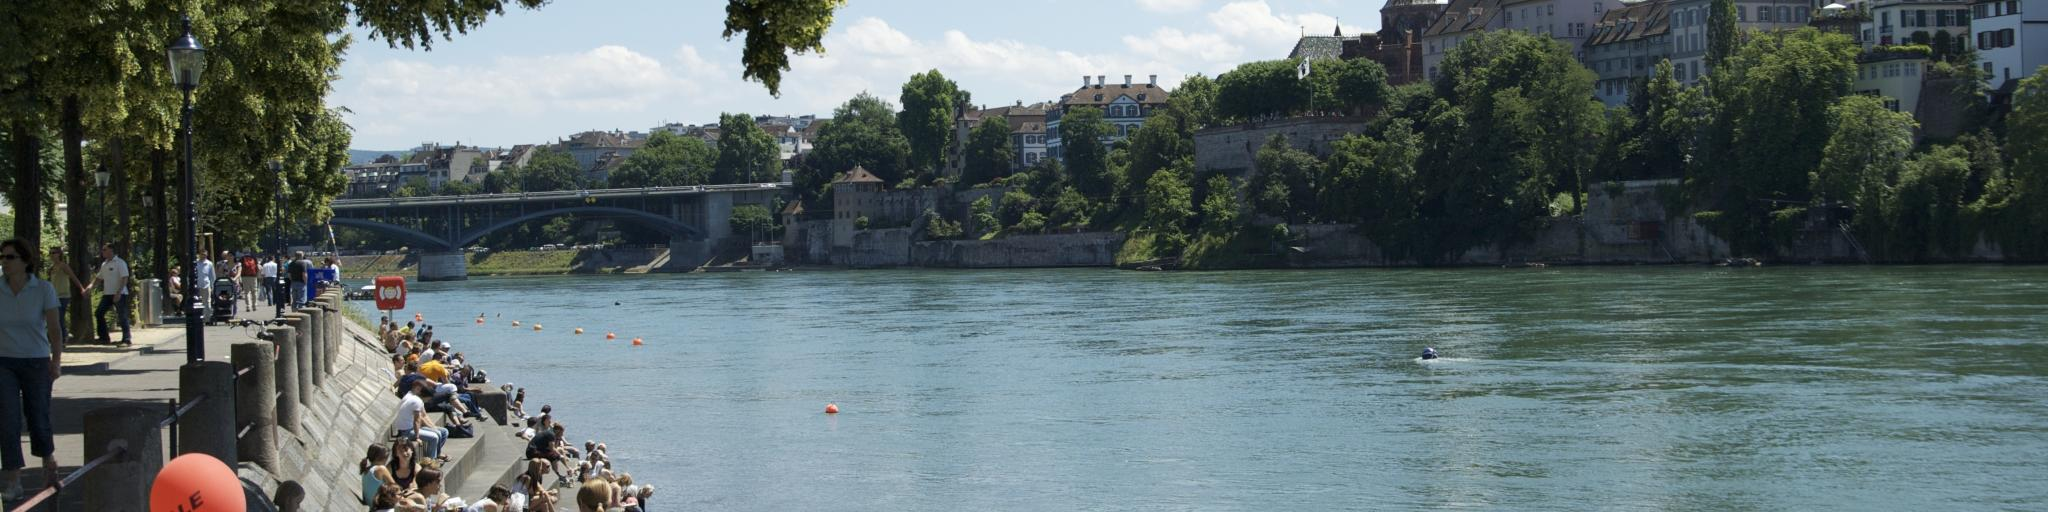 People sitting on the banks of the Rhine River in Basel